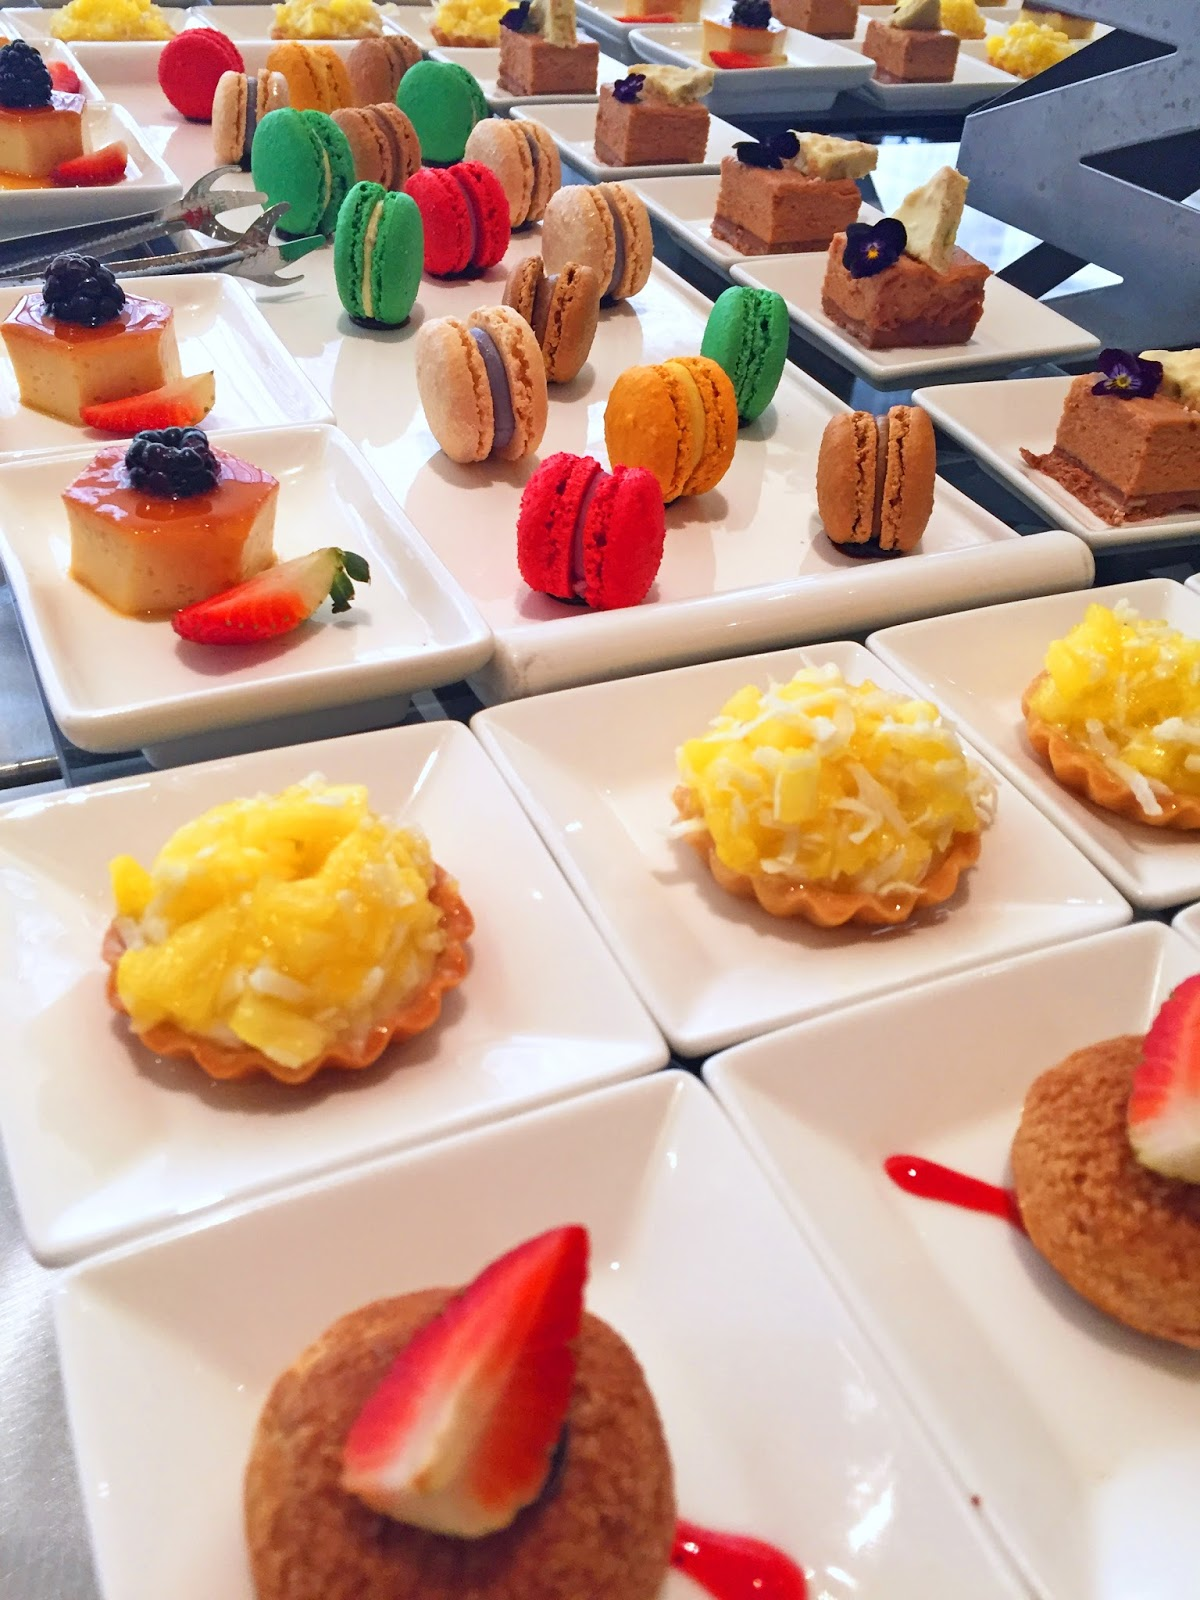 Delicious desserts that are perfect for Brunch!